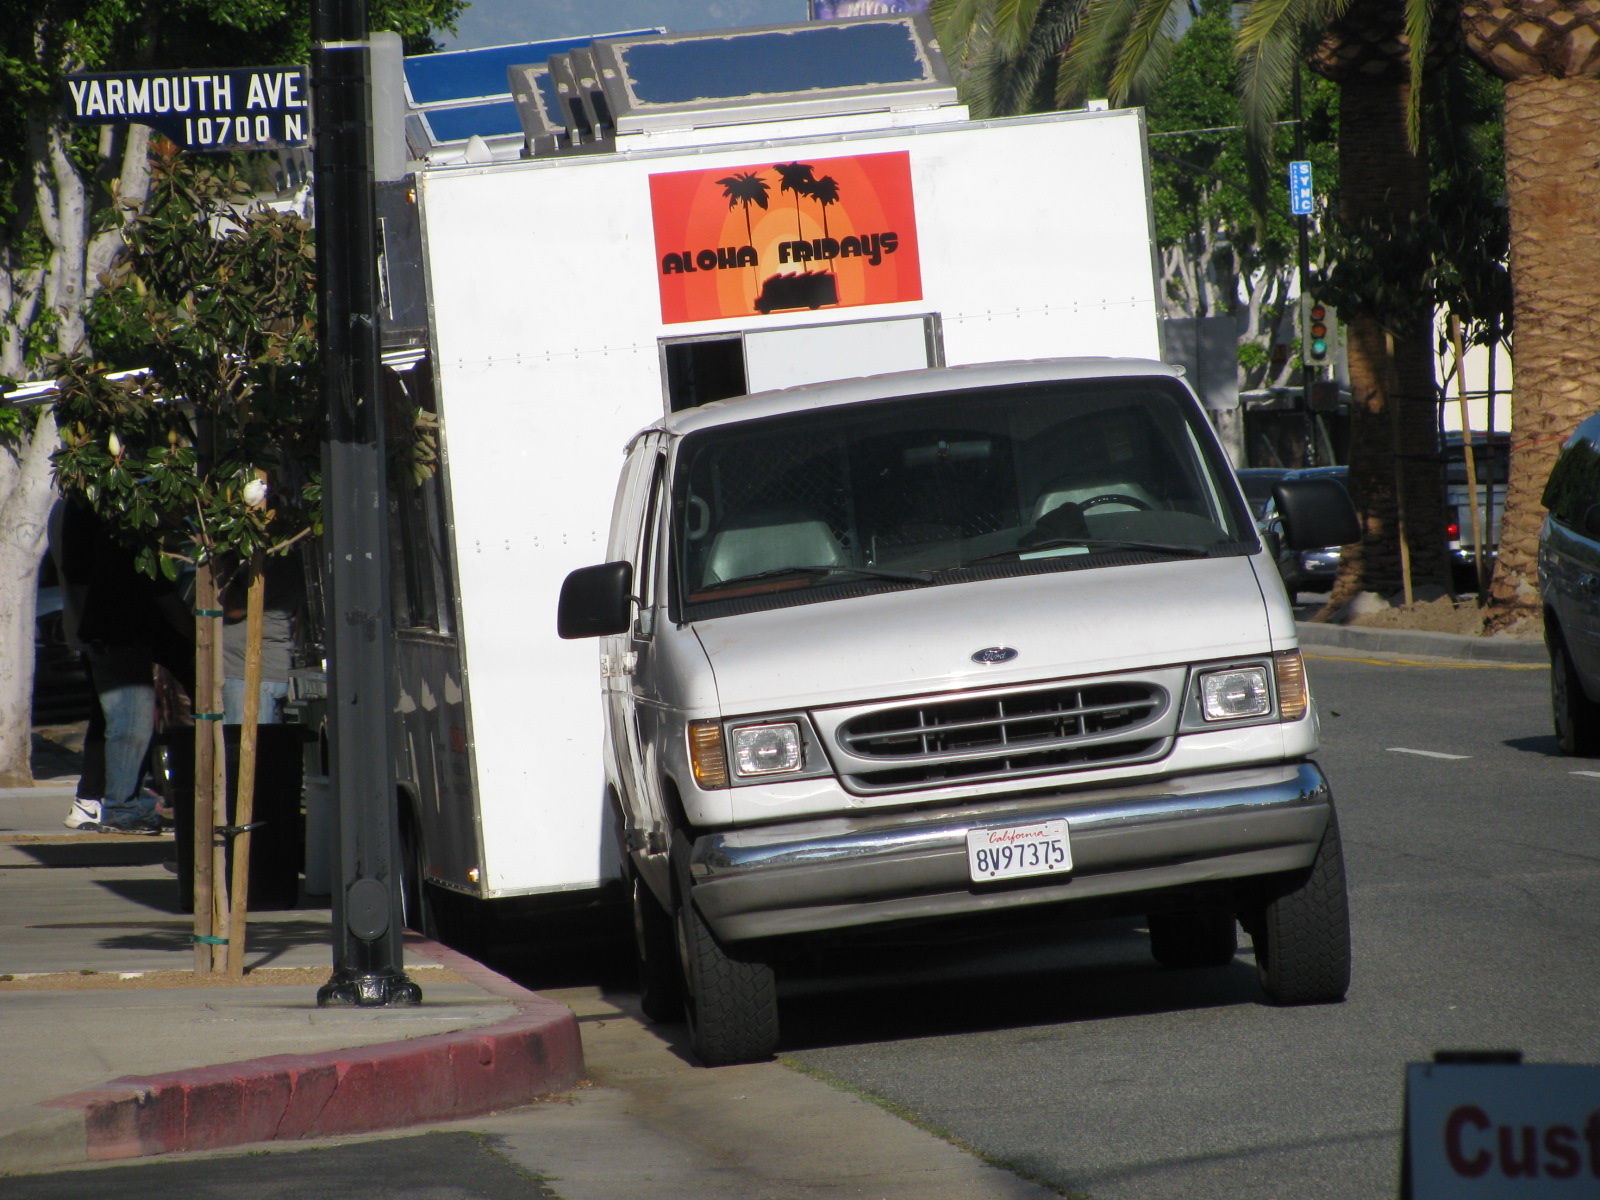 GIGA GRANADA HILLS Another Skirmish In The Food Truck War